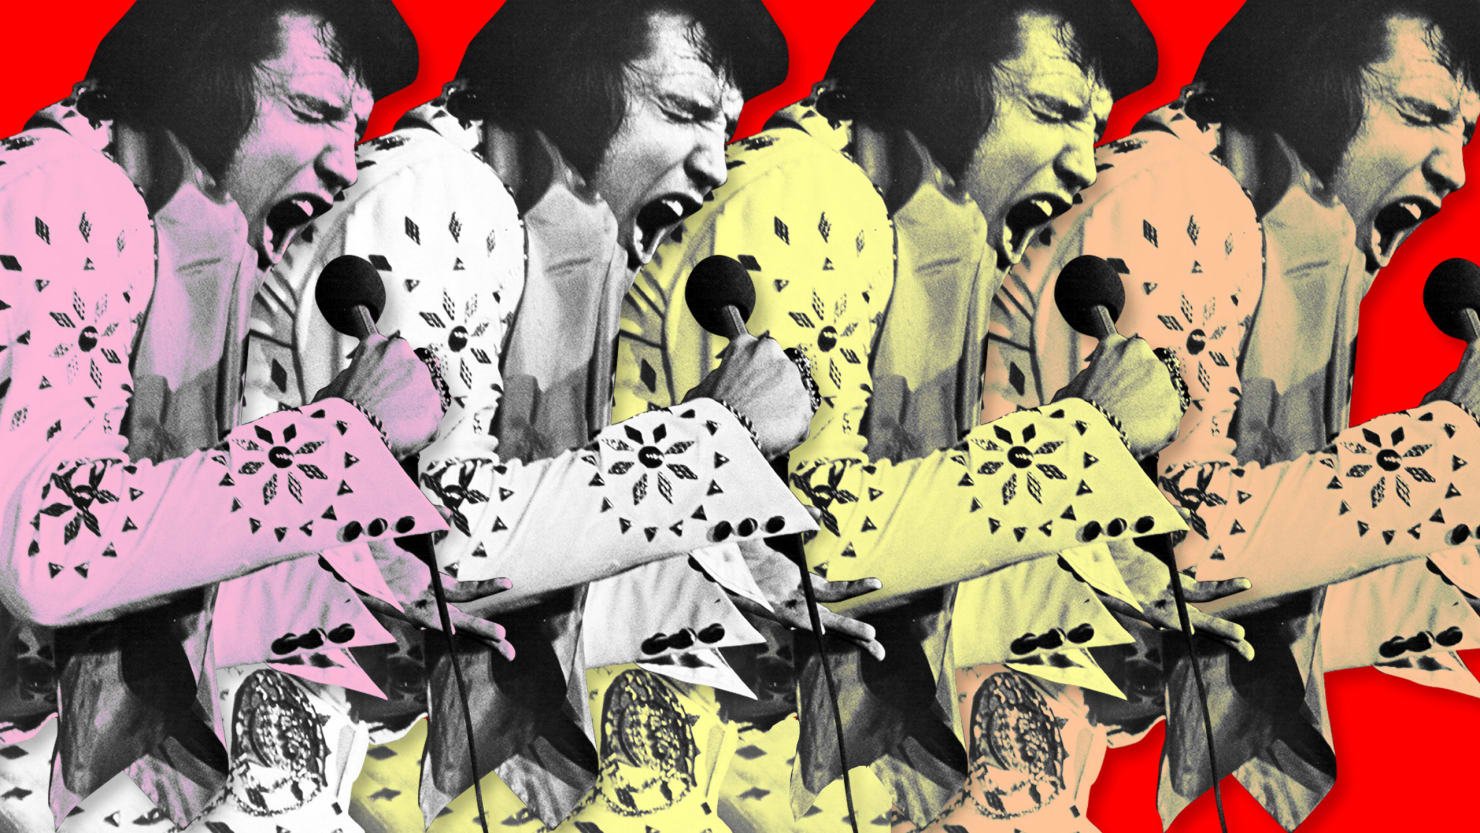 Elvis 40 Years On: The King Is Dead—Long Live What's His Name